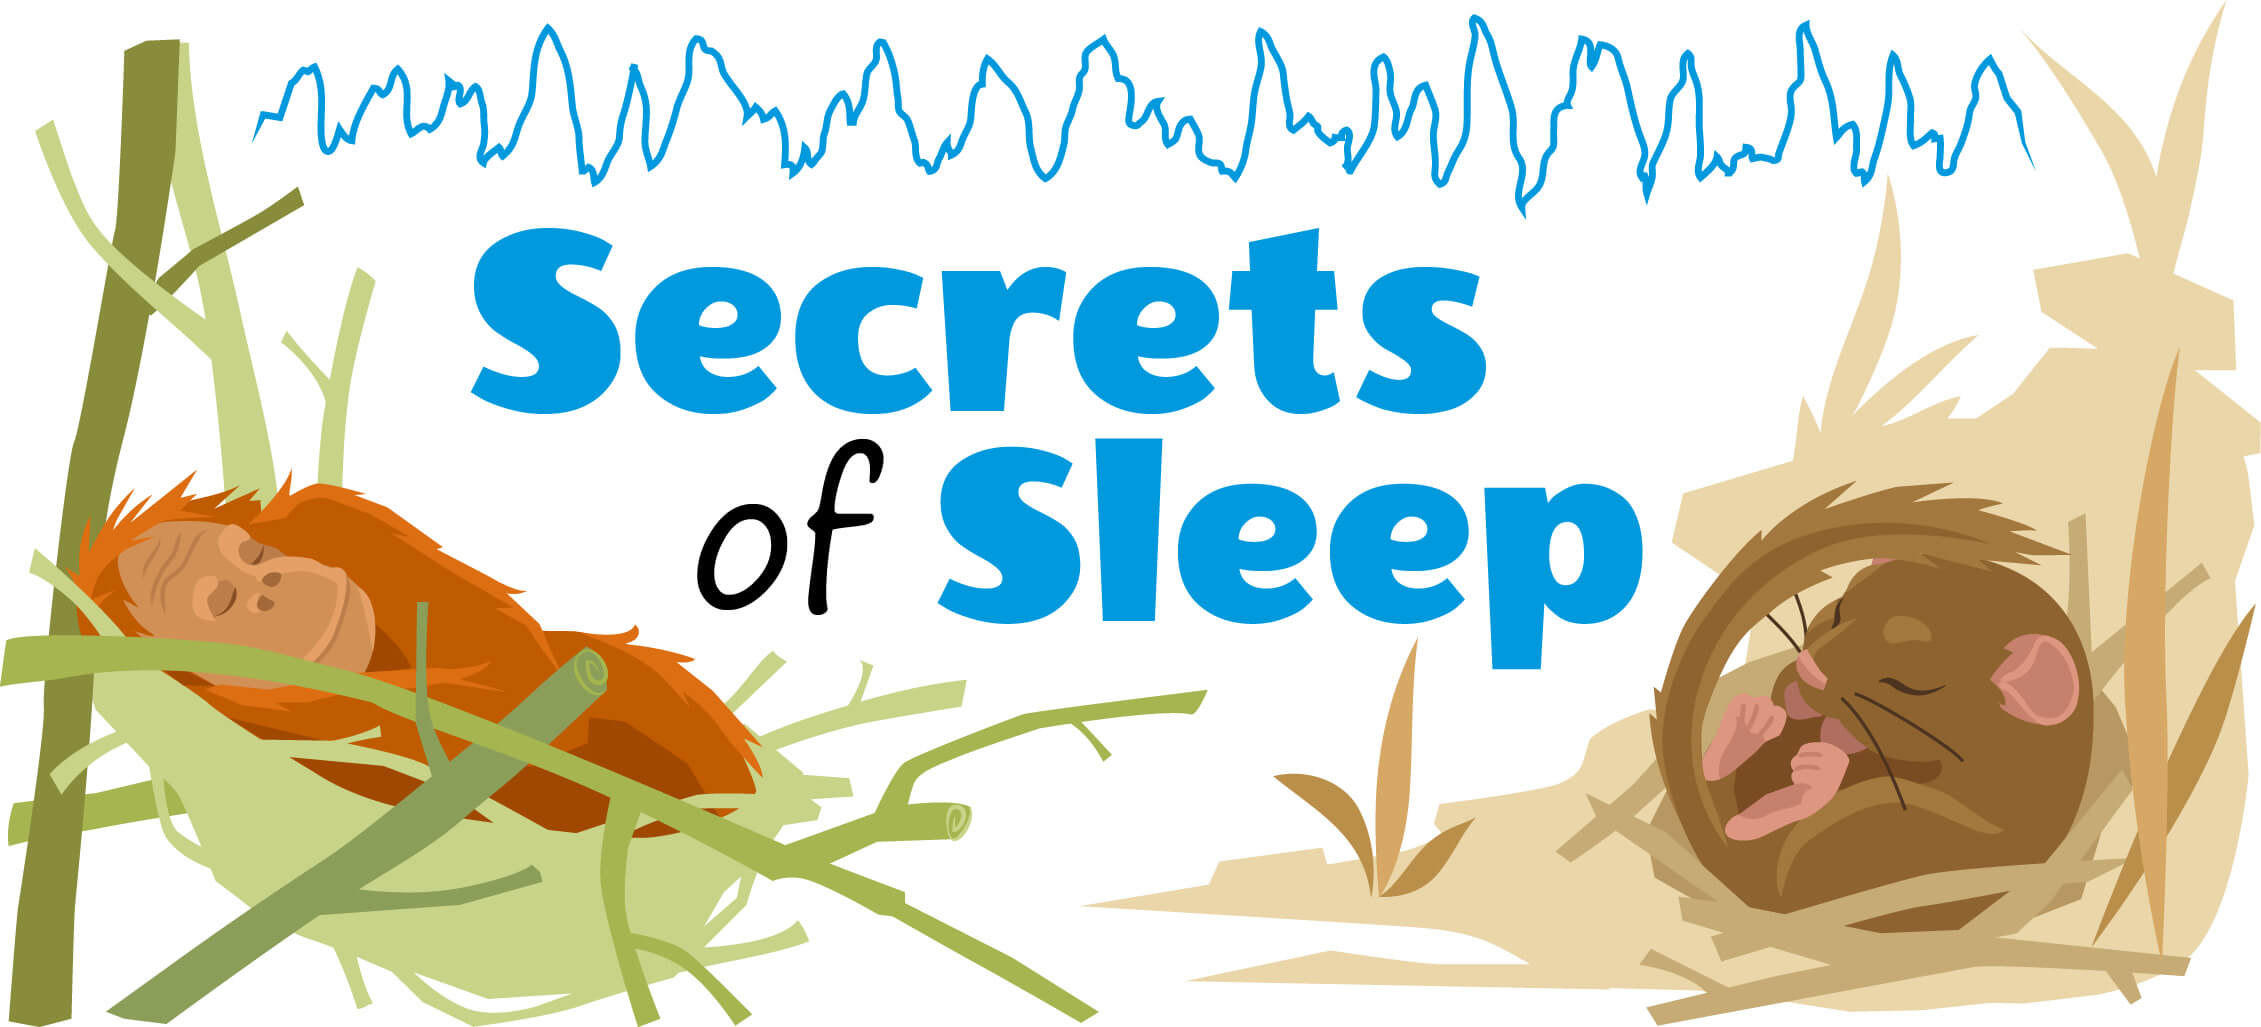 Secrets of sleep